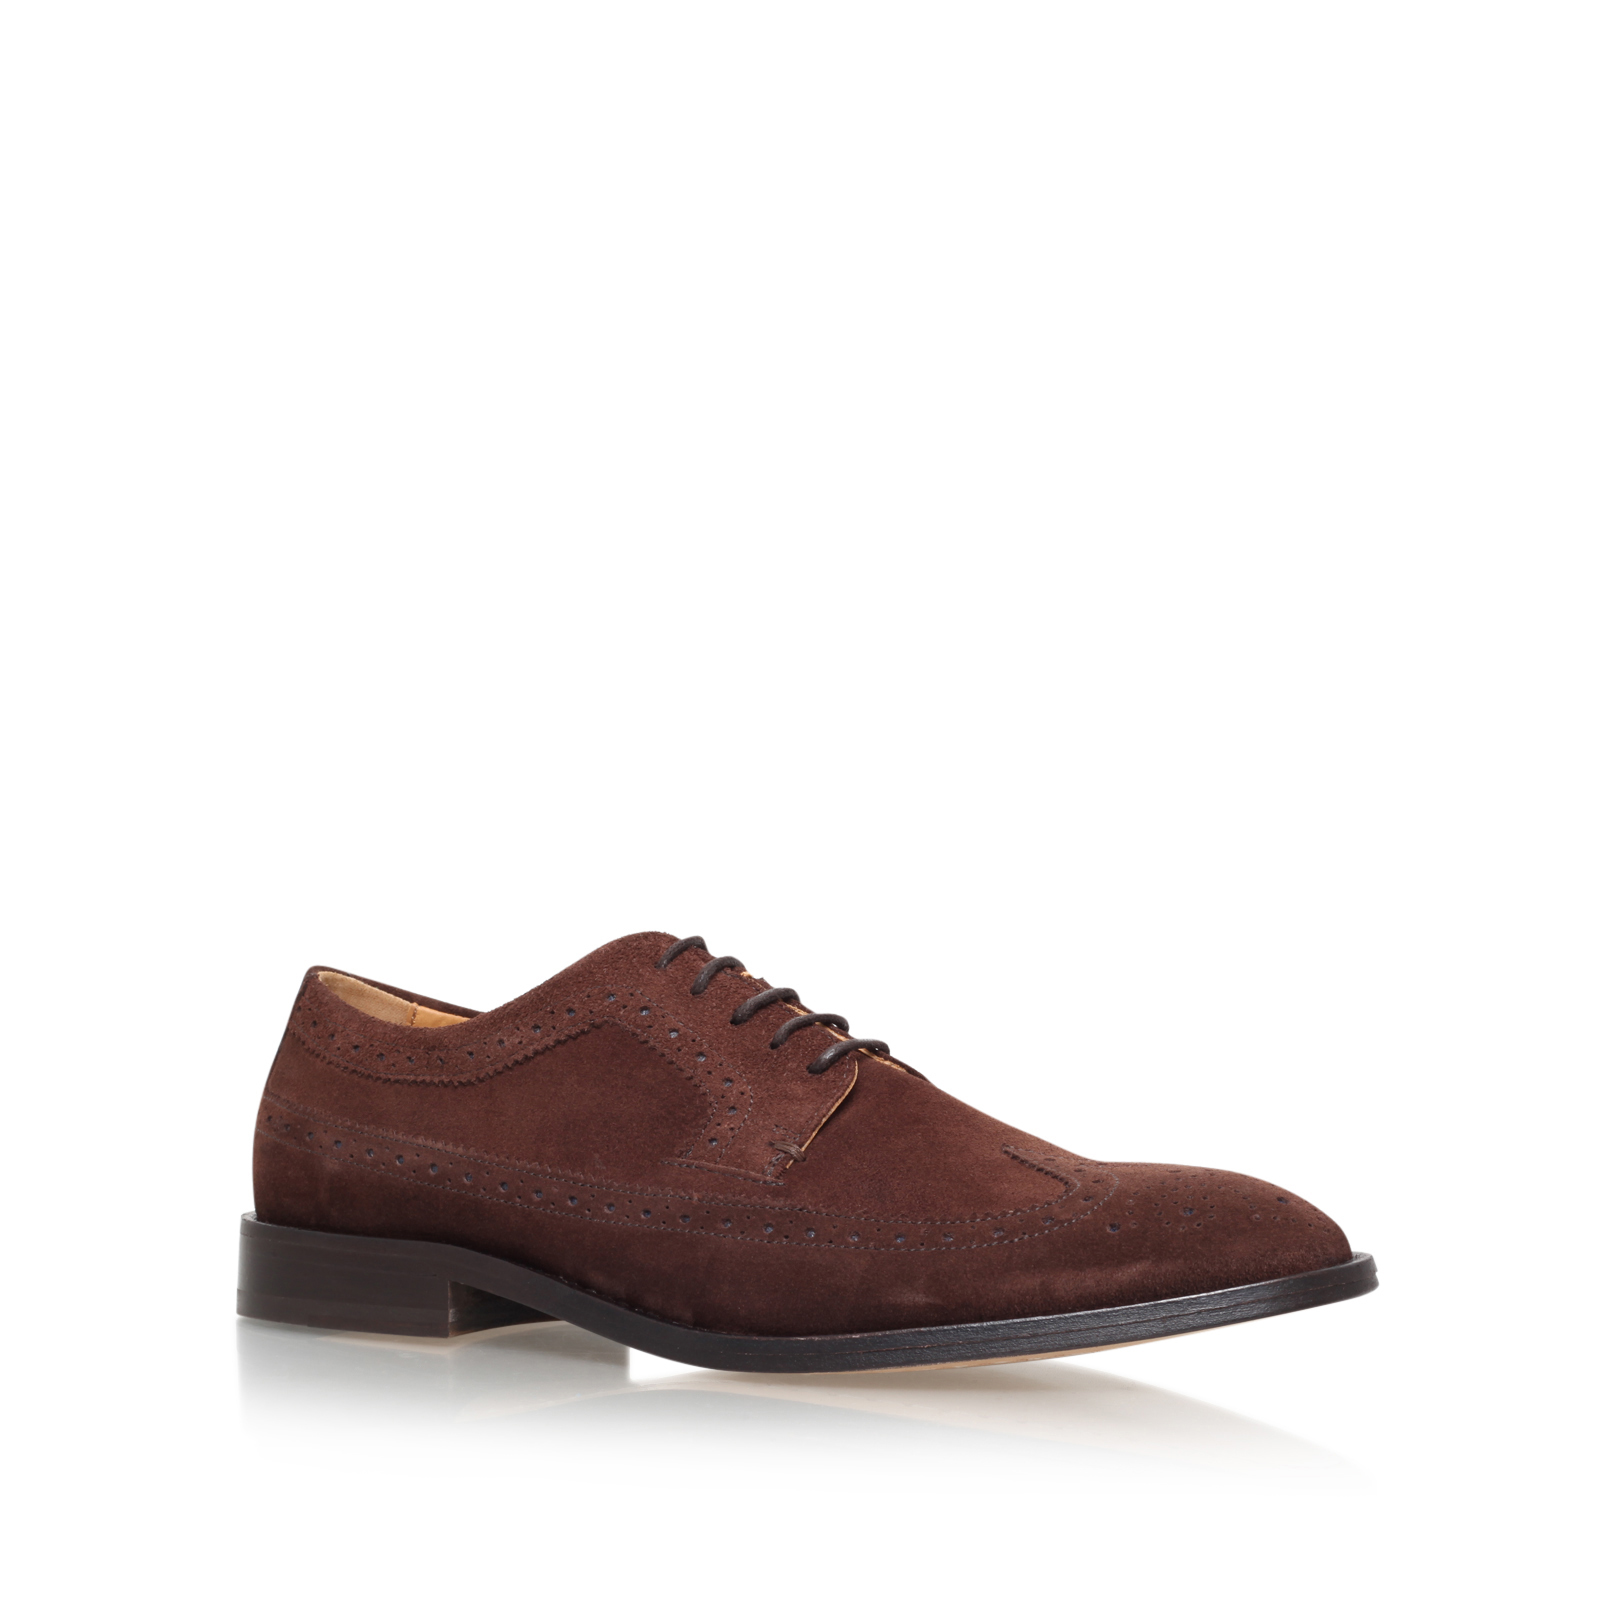 COLLIER WING TIP